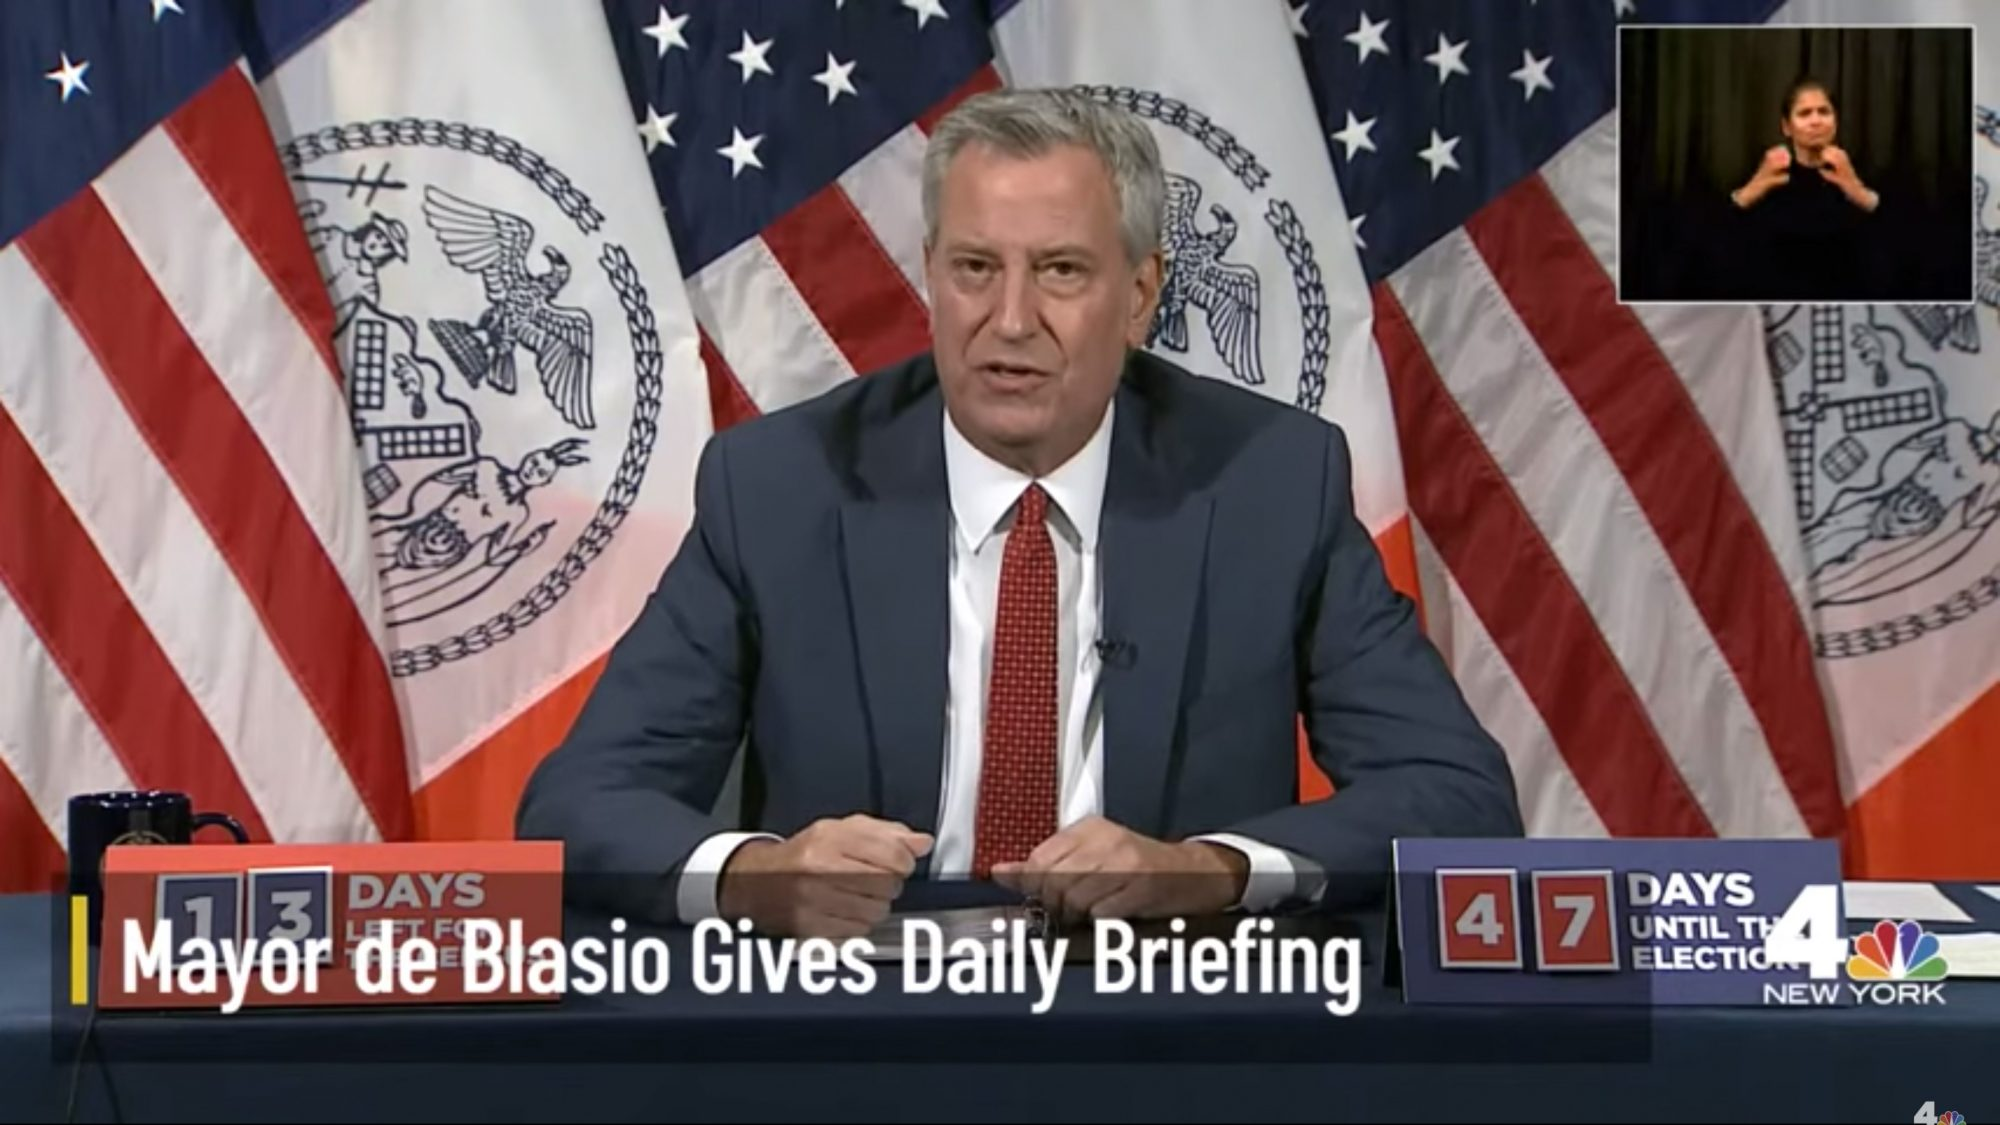 NYC Mayor De Blasio Holds Daily Briefing